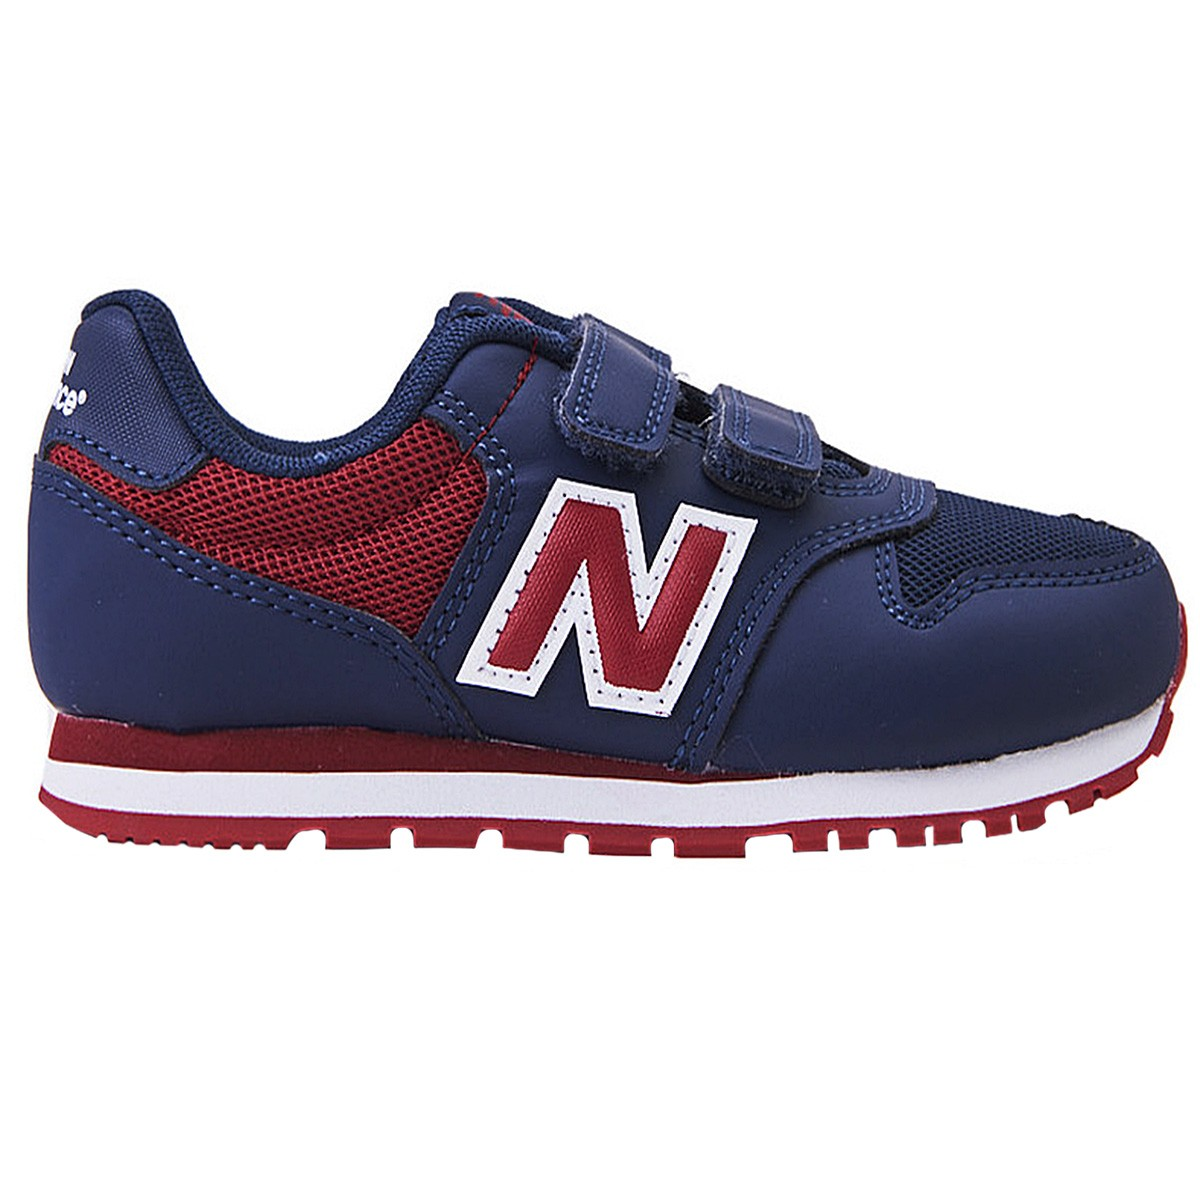 sneakers new balance 500 hook and loop calzature baby. Black Bedroom Furniture Sets. Home Design Ideas